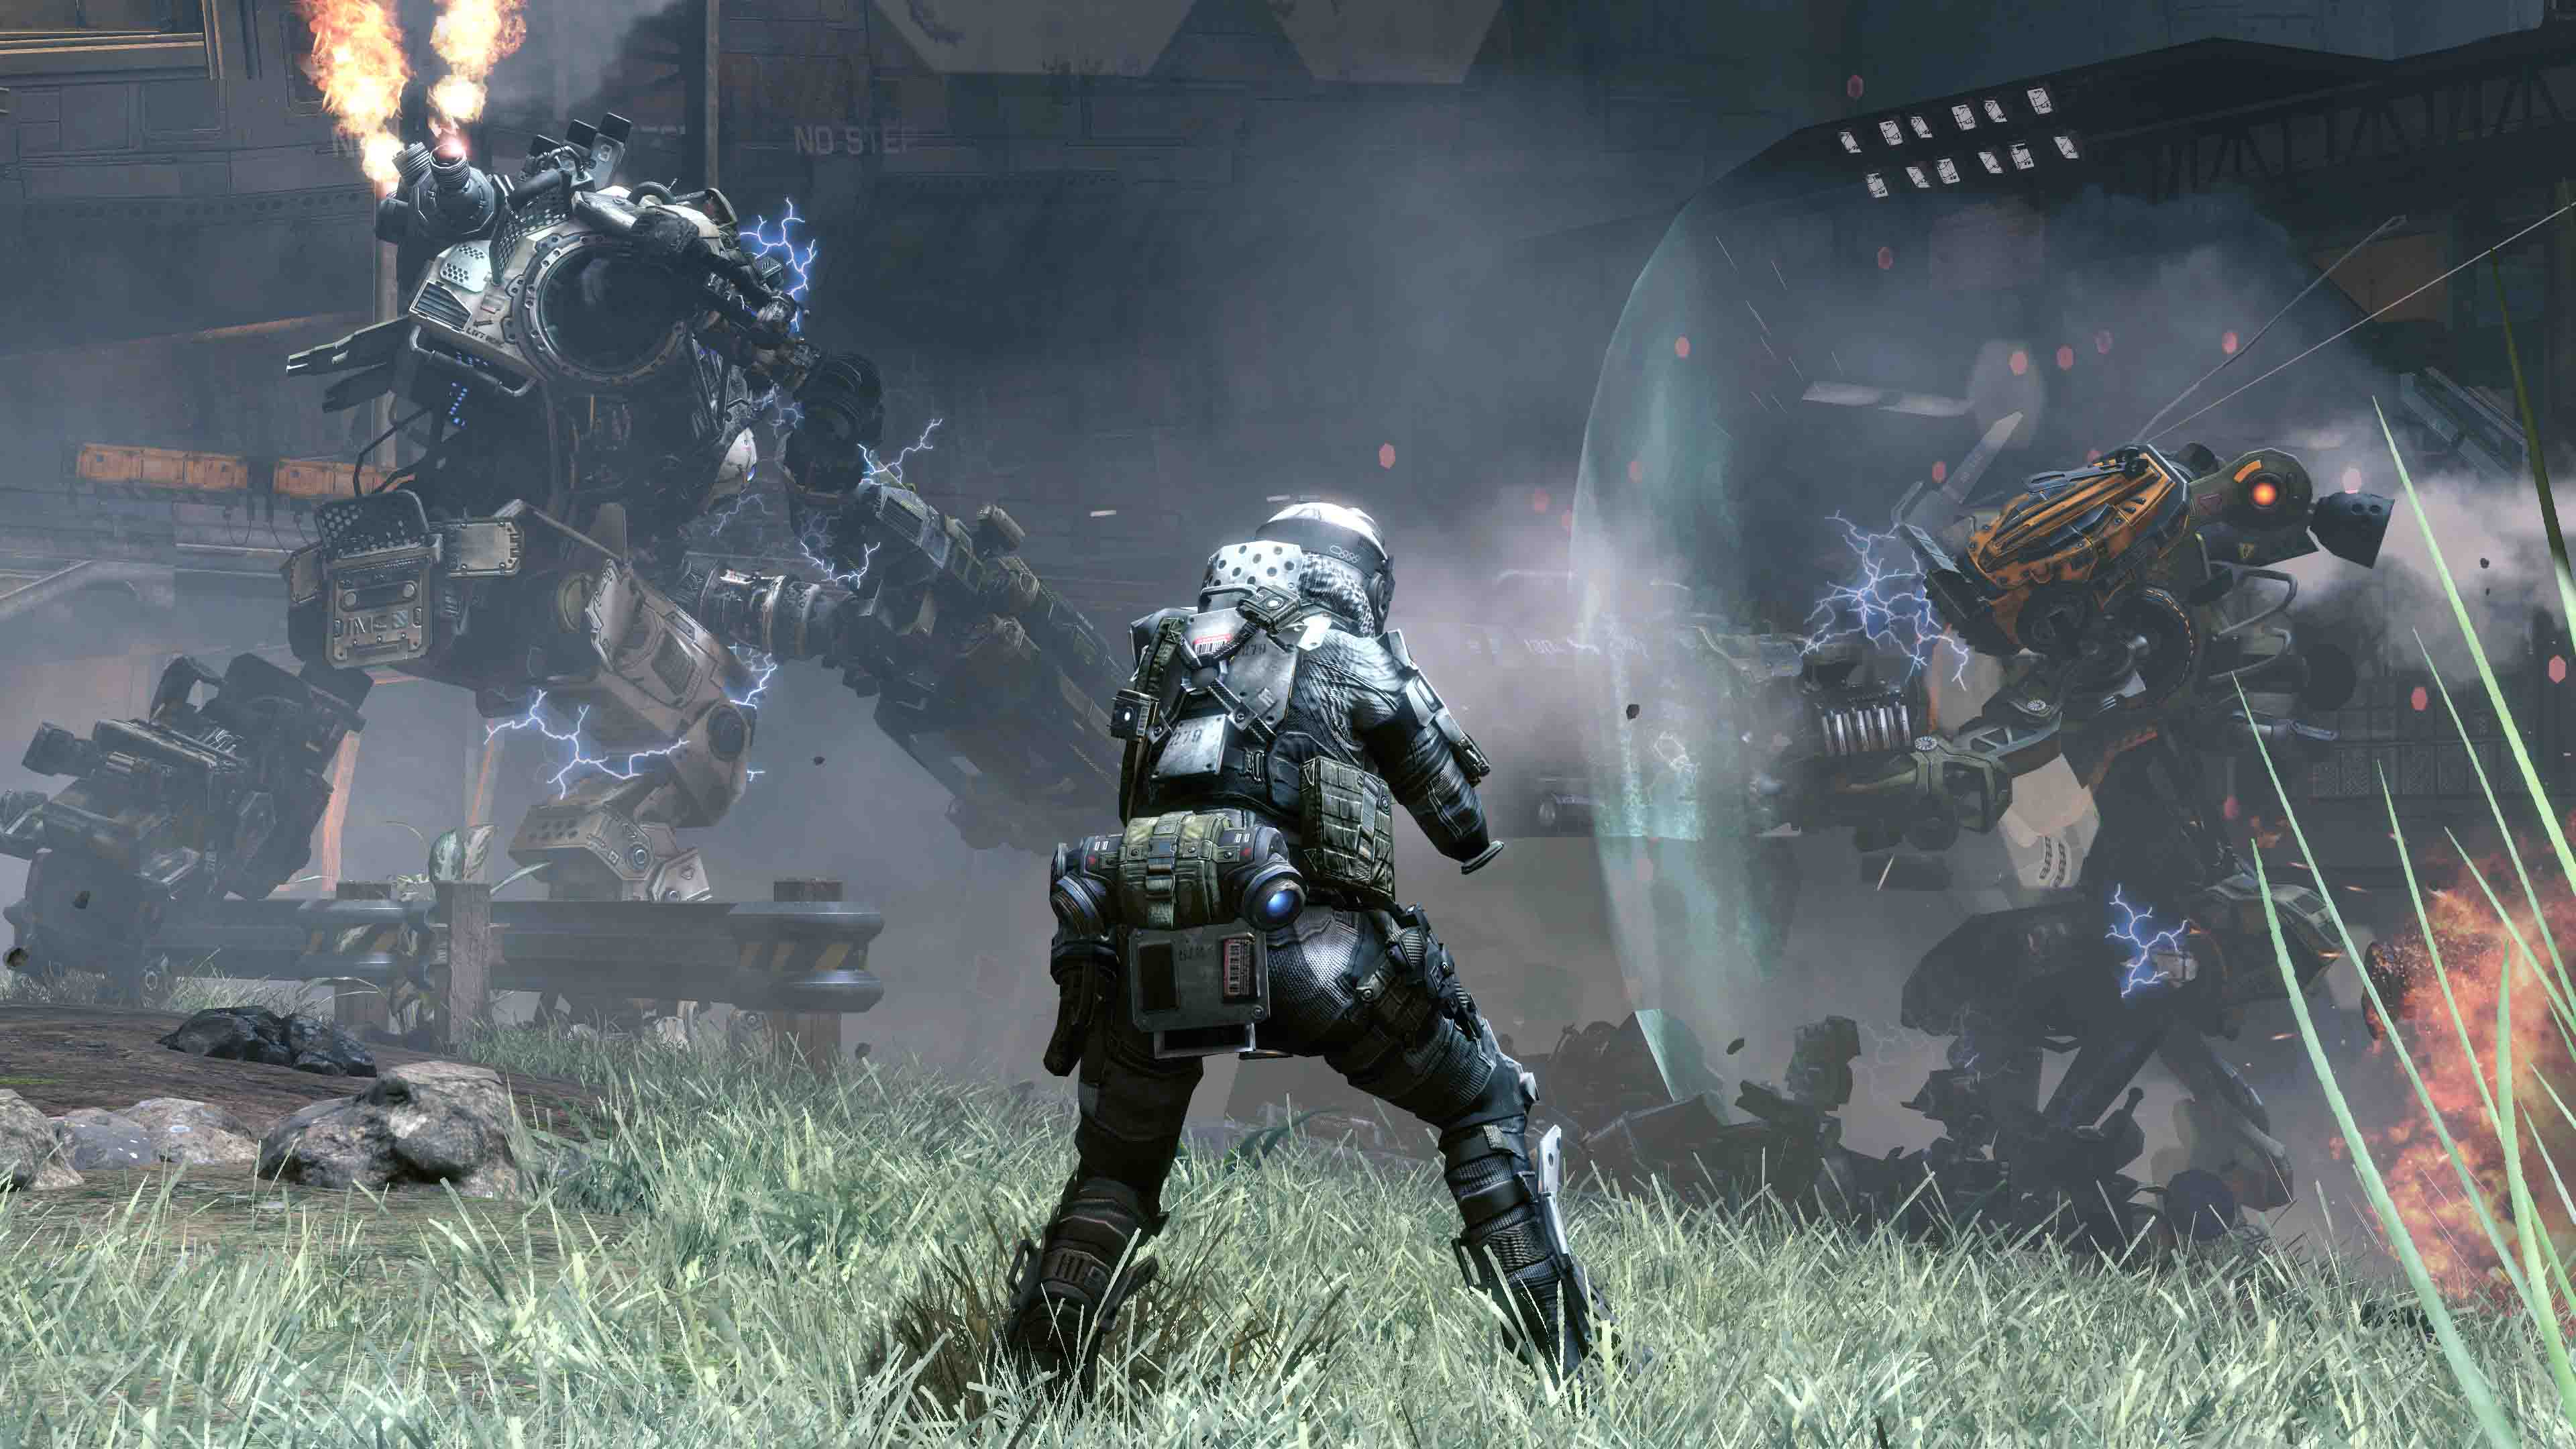 Titanfall Wallpapers High Resolution Is Cool Wallpapers